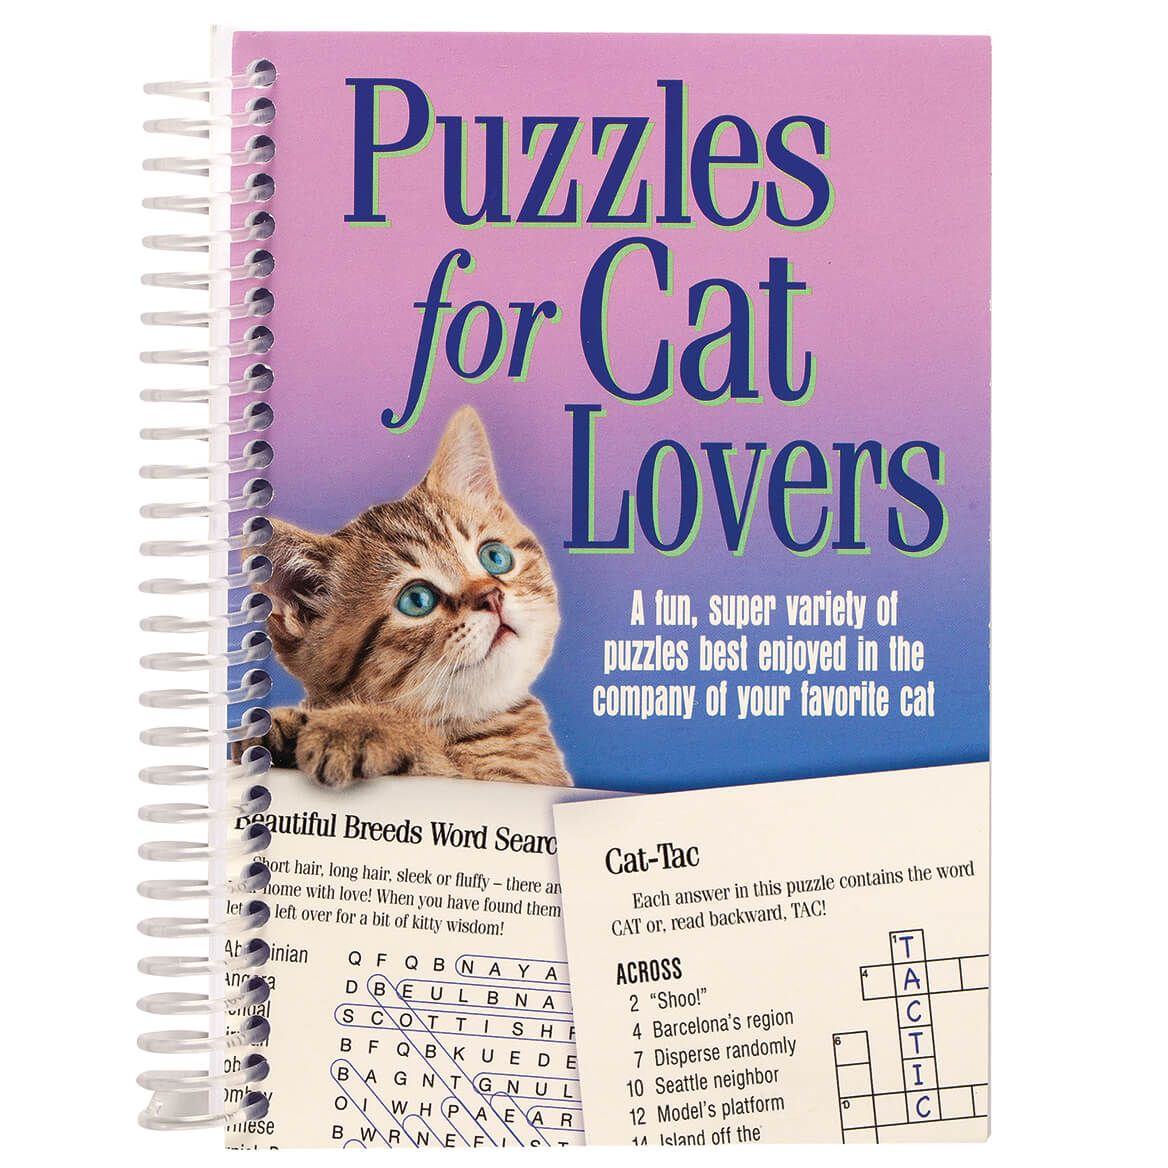 Puzzles for Cat Lovers Mini Book-370485